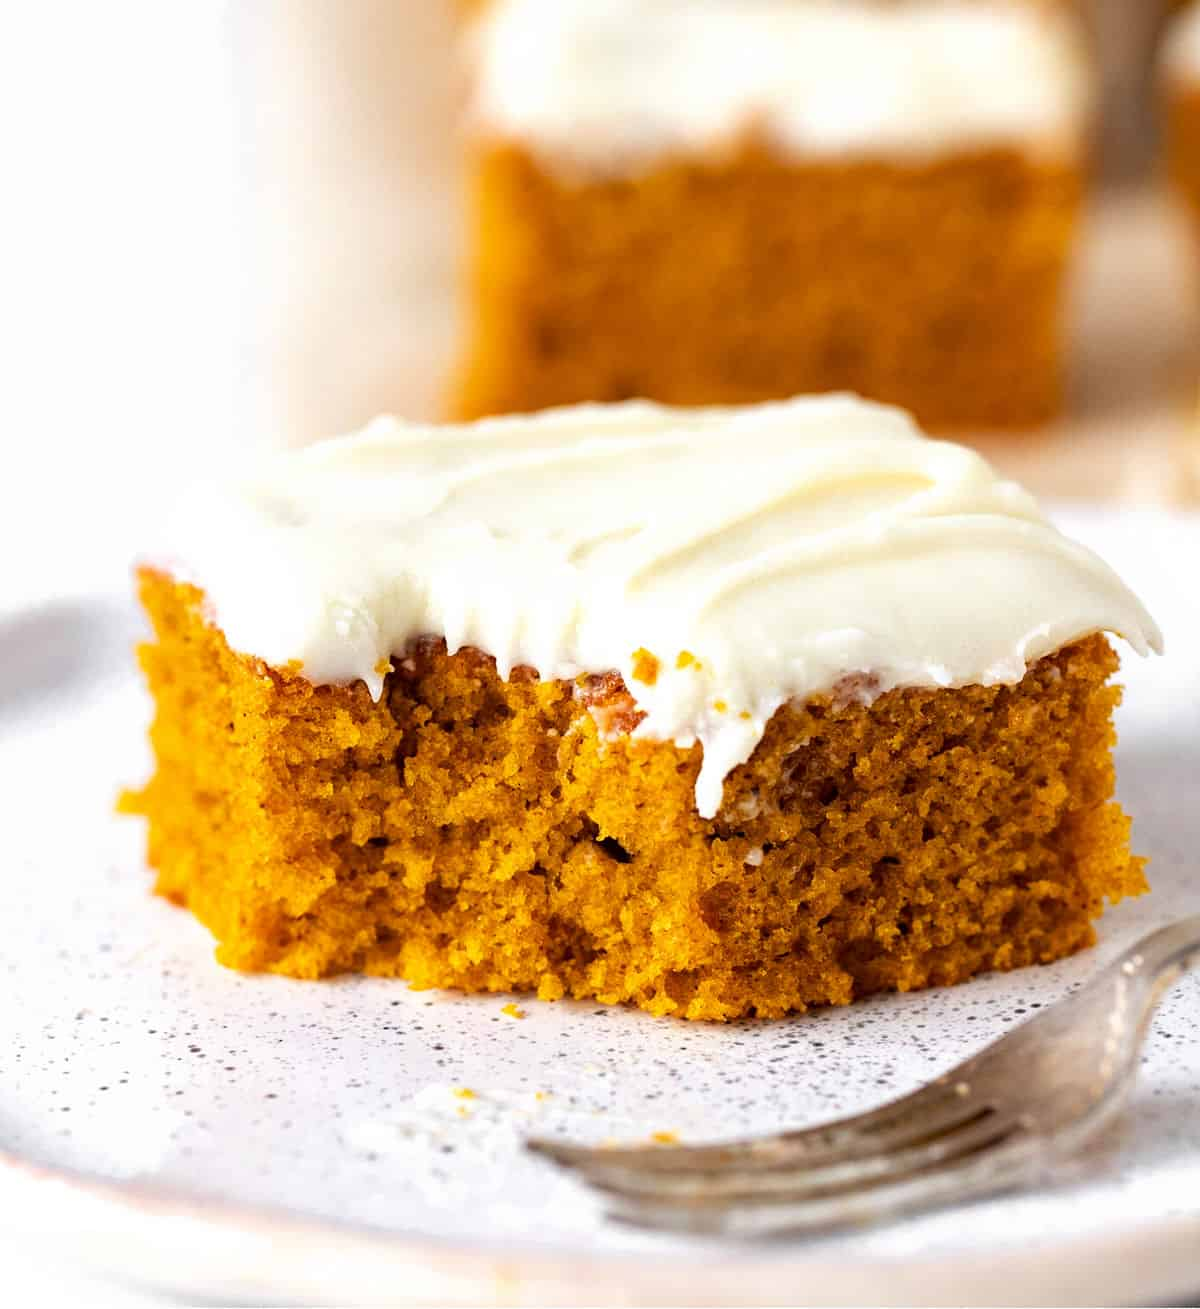 Bitten square of frosted pumpkin cake on white plate with fork, more cake on white background